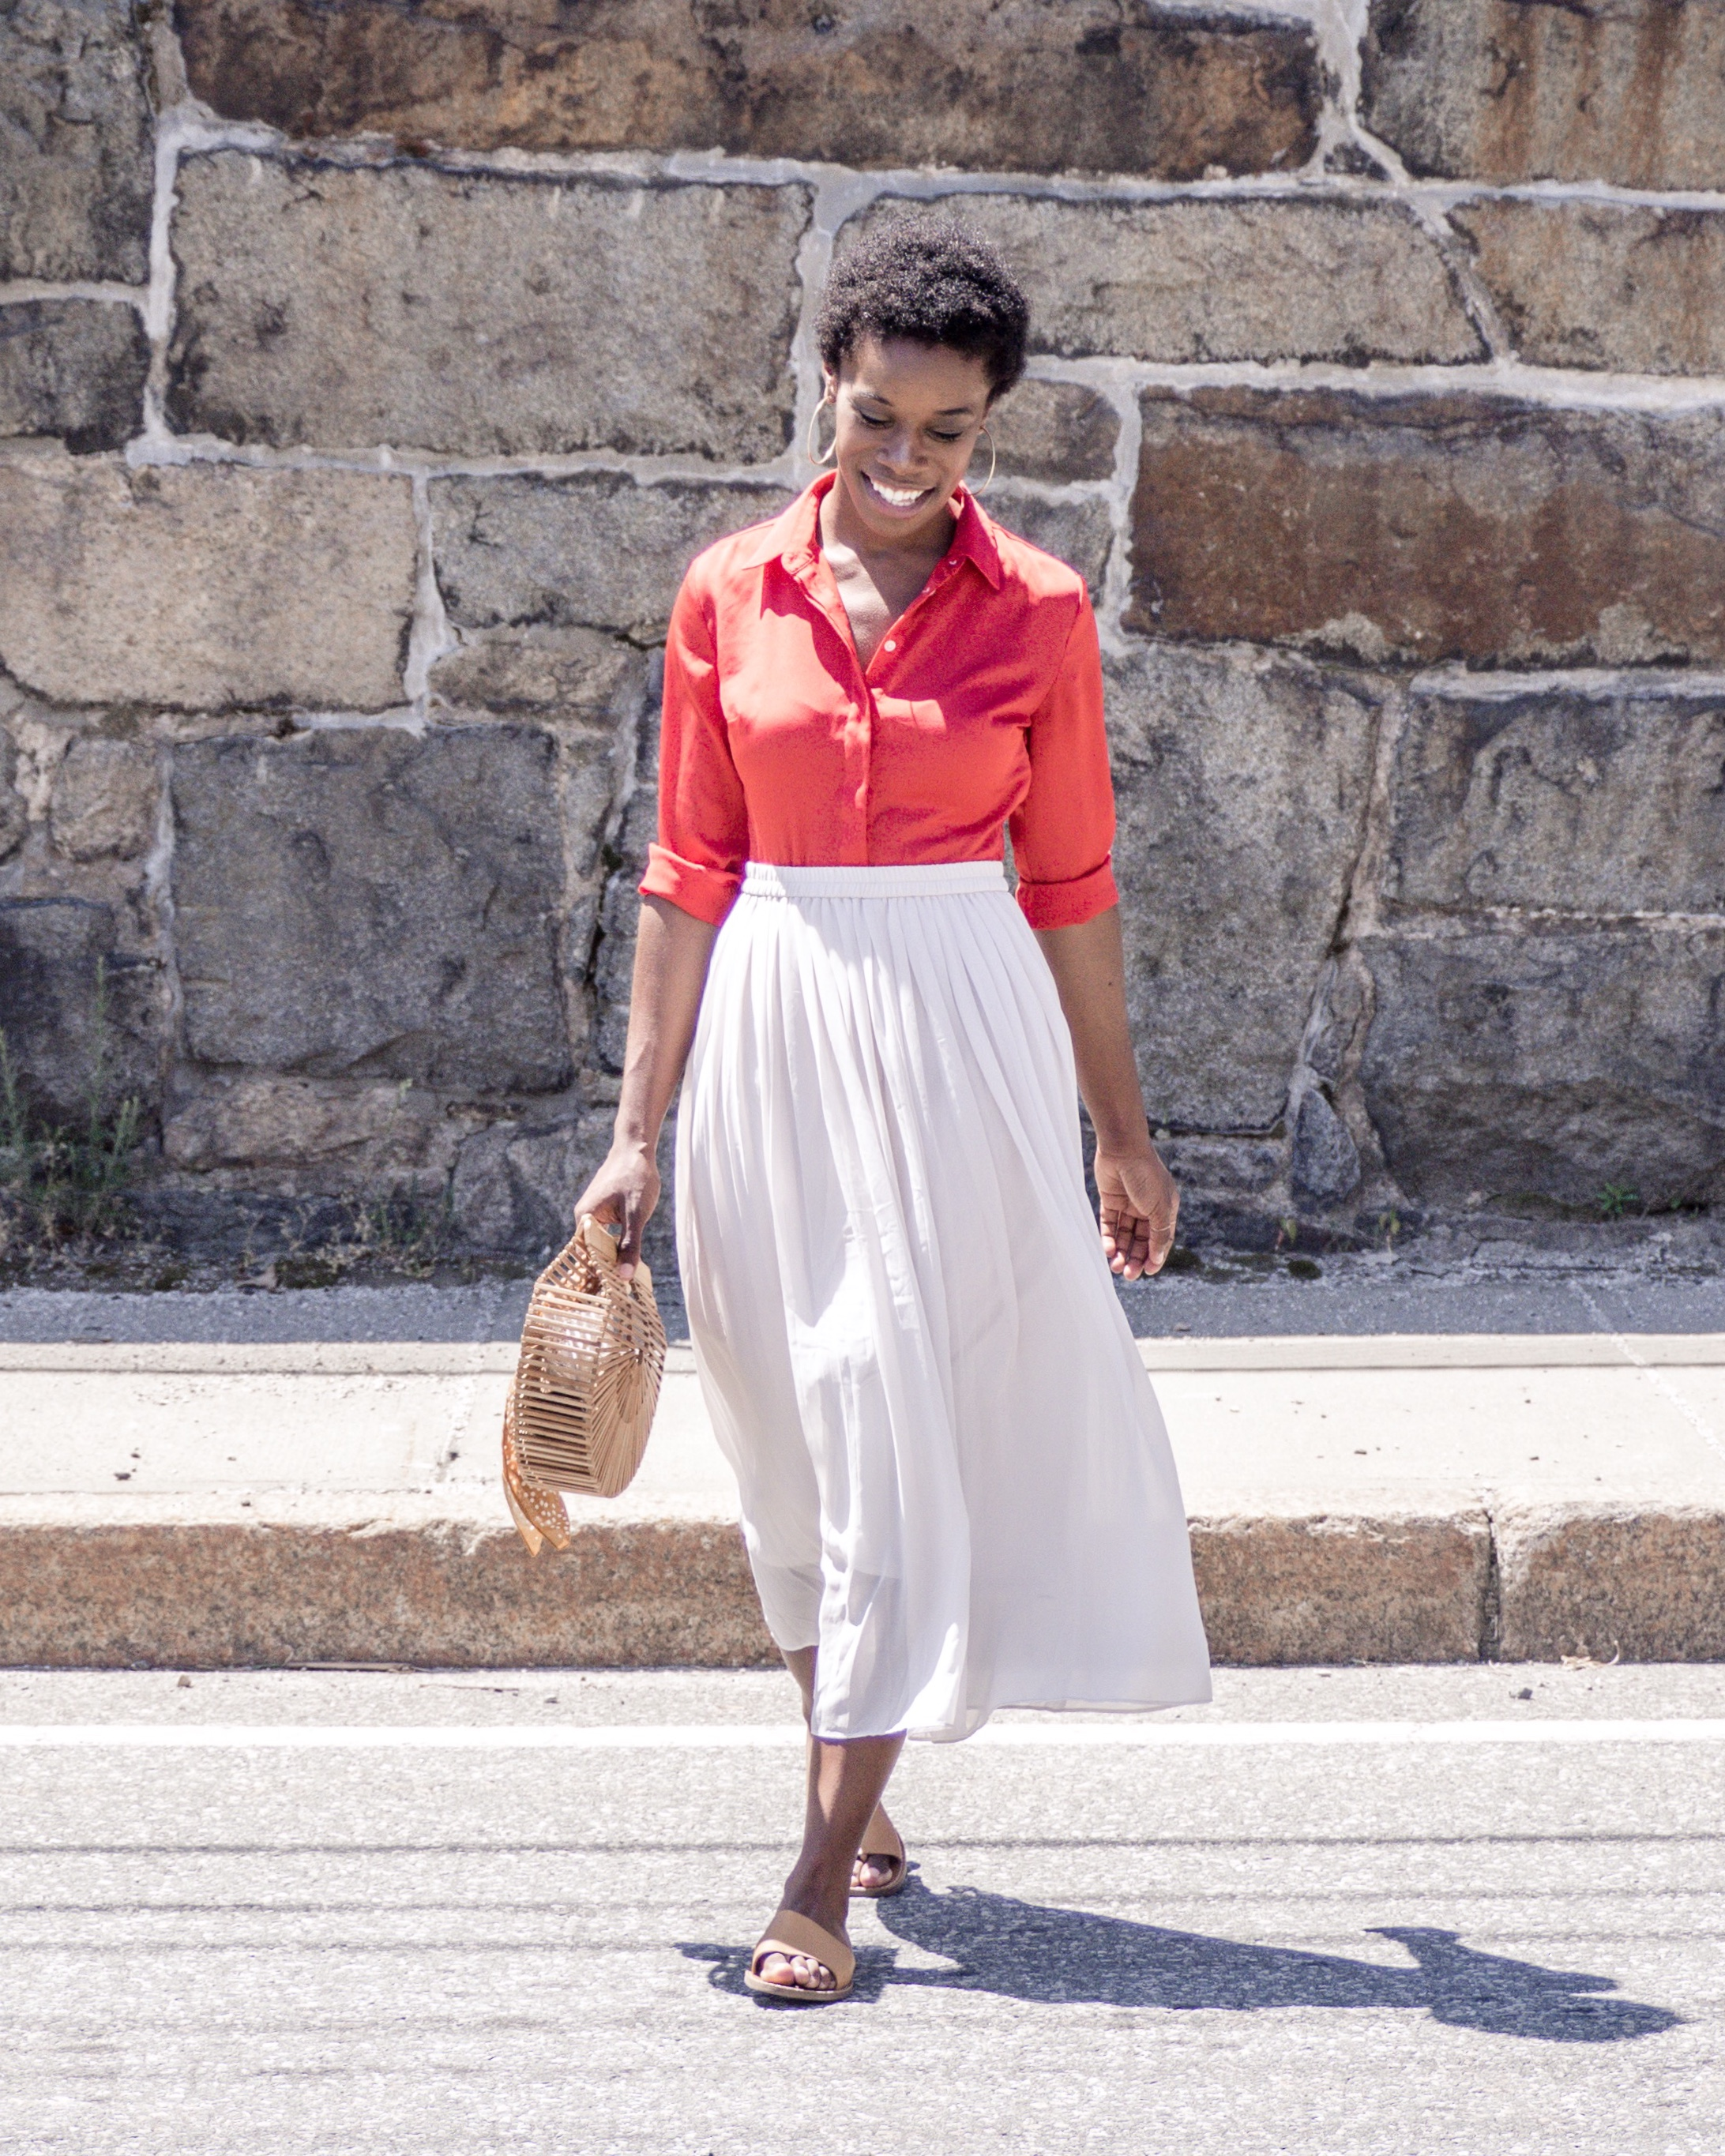 46dc809e0a This Banana Republic dress is the perfect example. I ve partnered with  thredUP to style it five different ways for summer.